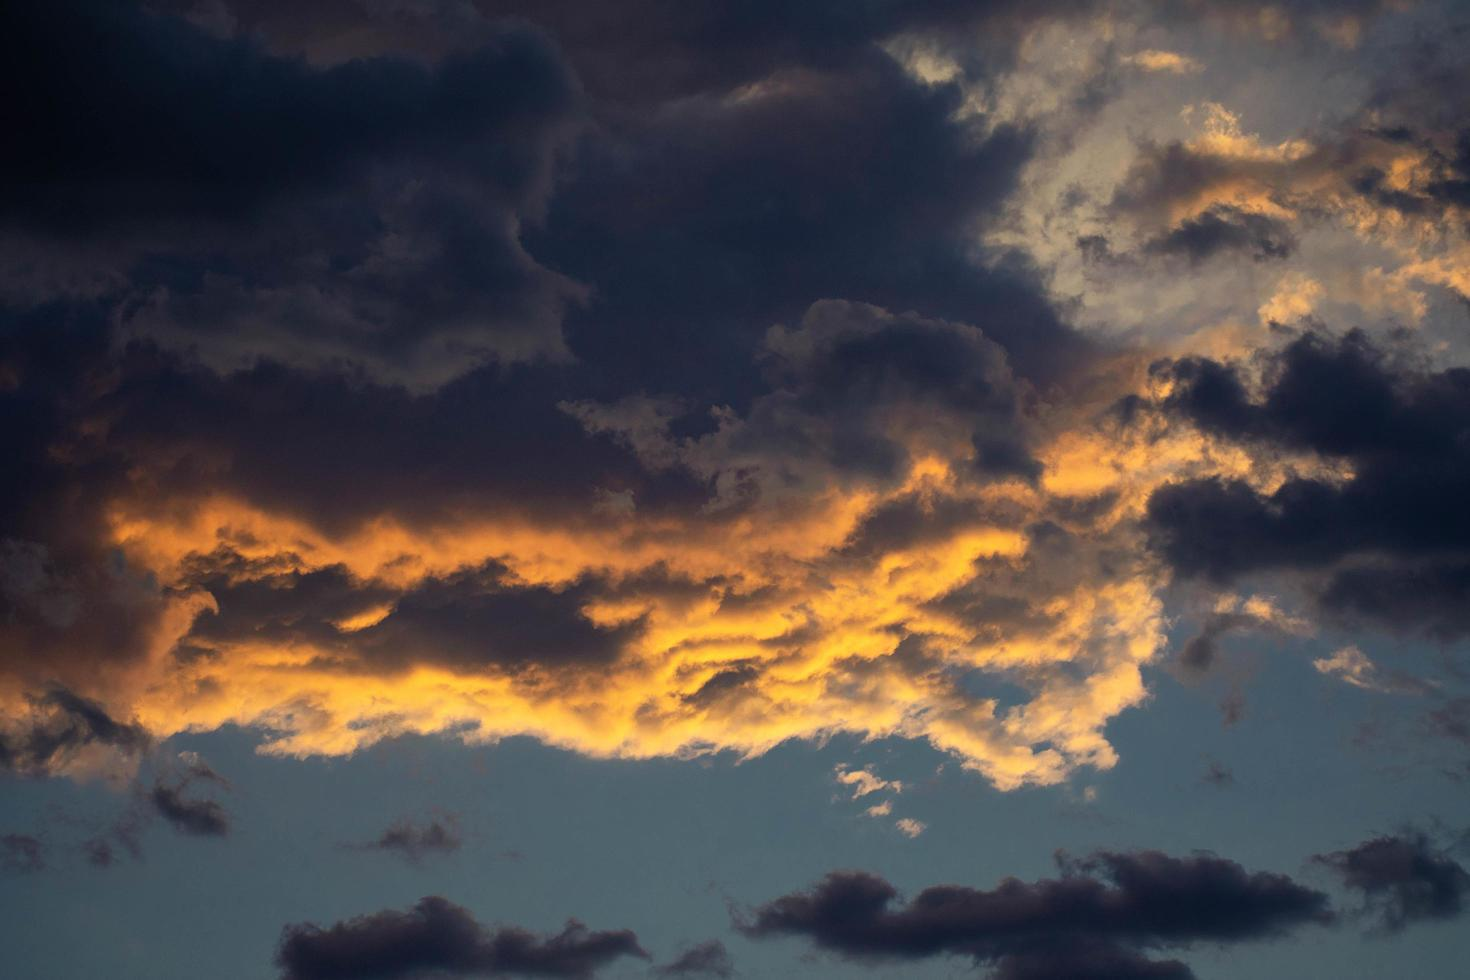 Dark and stormy clouds photo